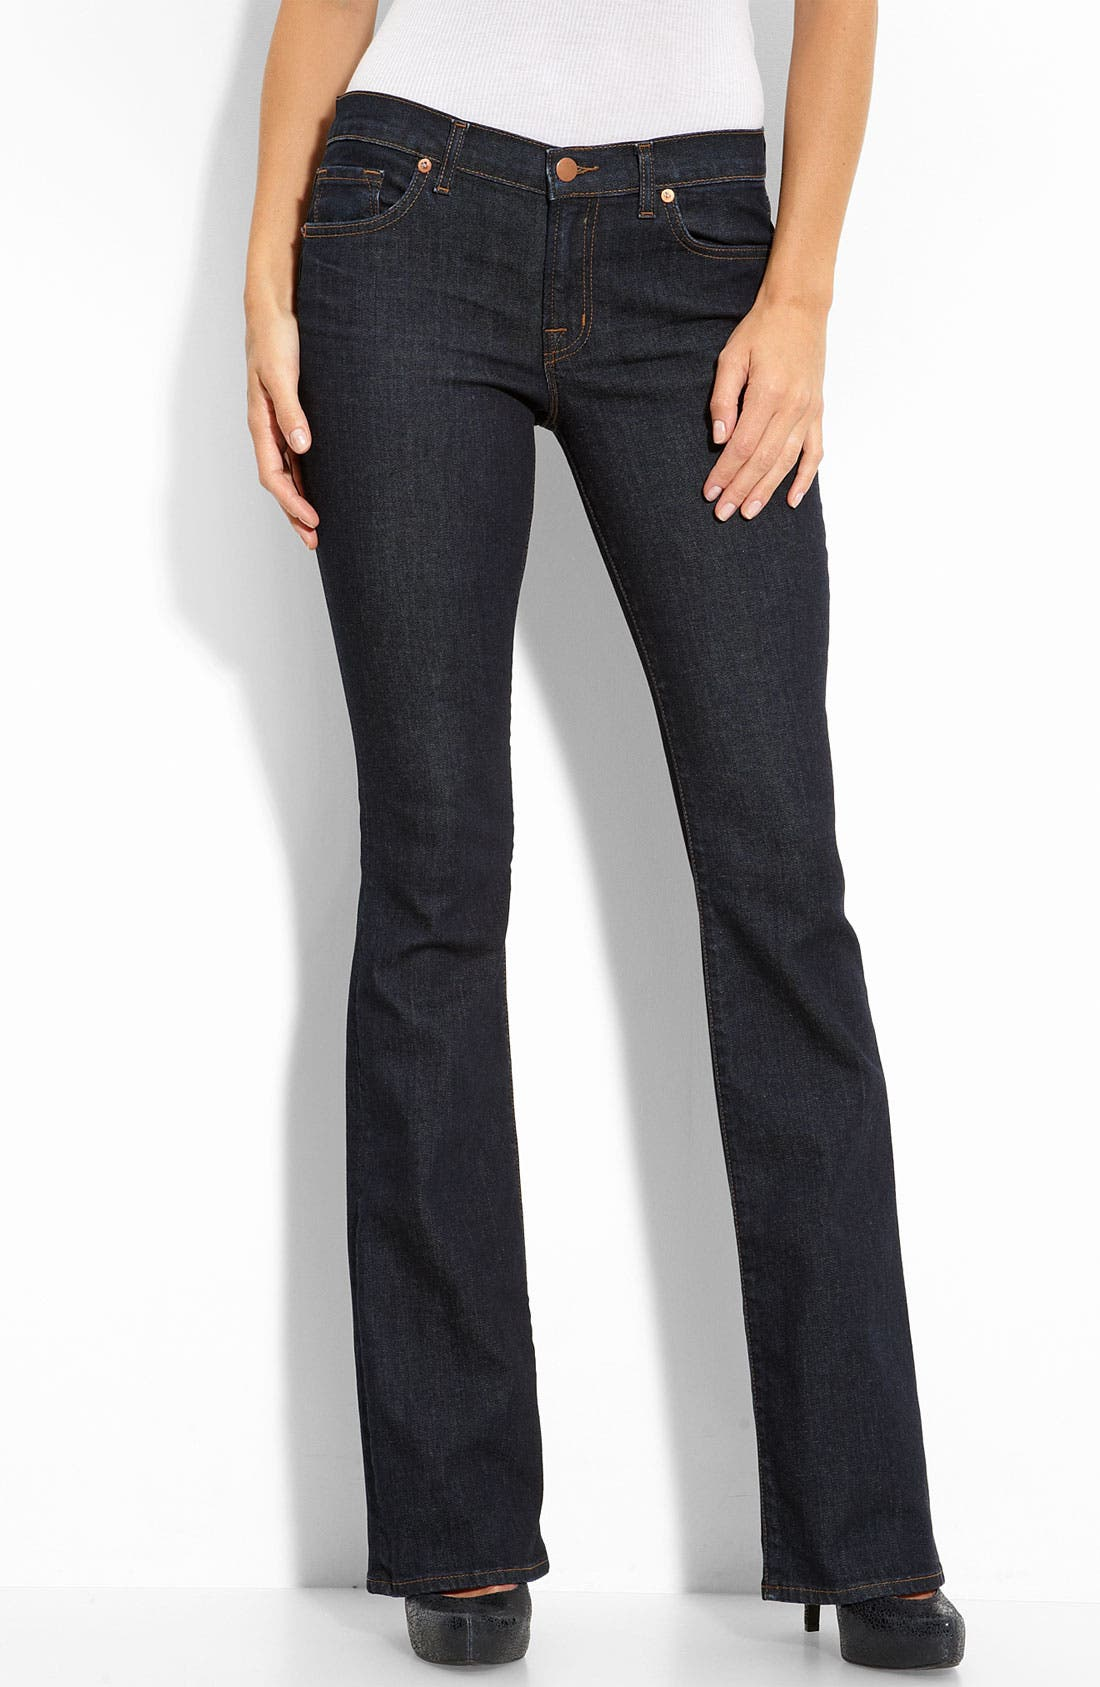 J BRAND,                             'Bailey' Bootcut Stretch Jeans,                             Alternate thumbnail 2, color,                             401